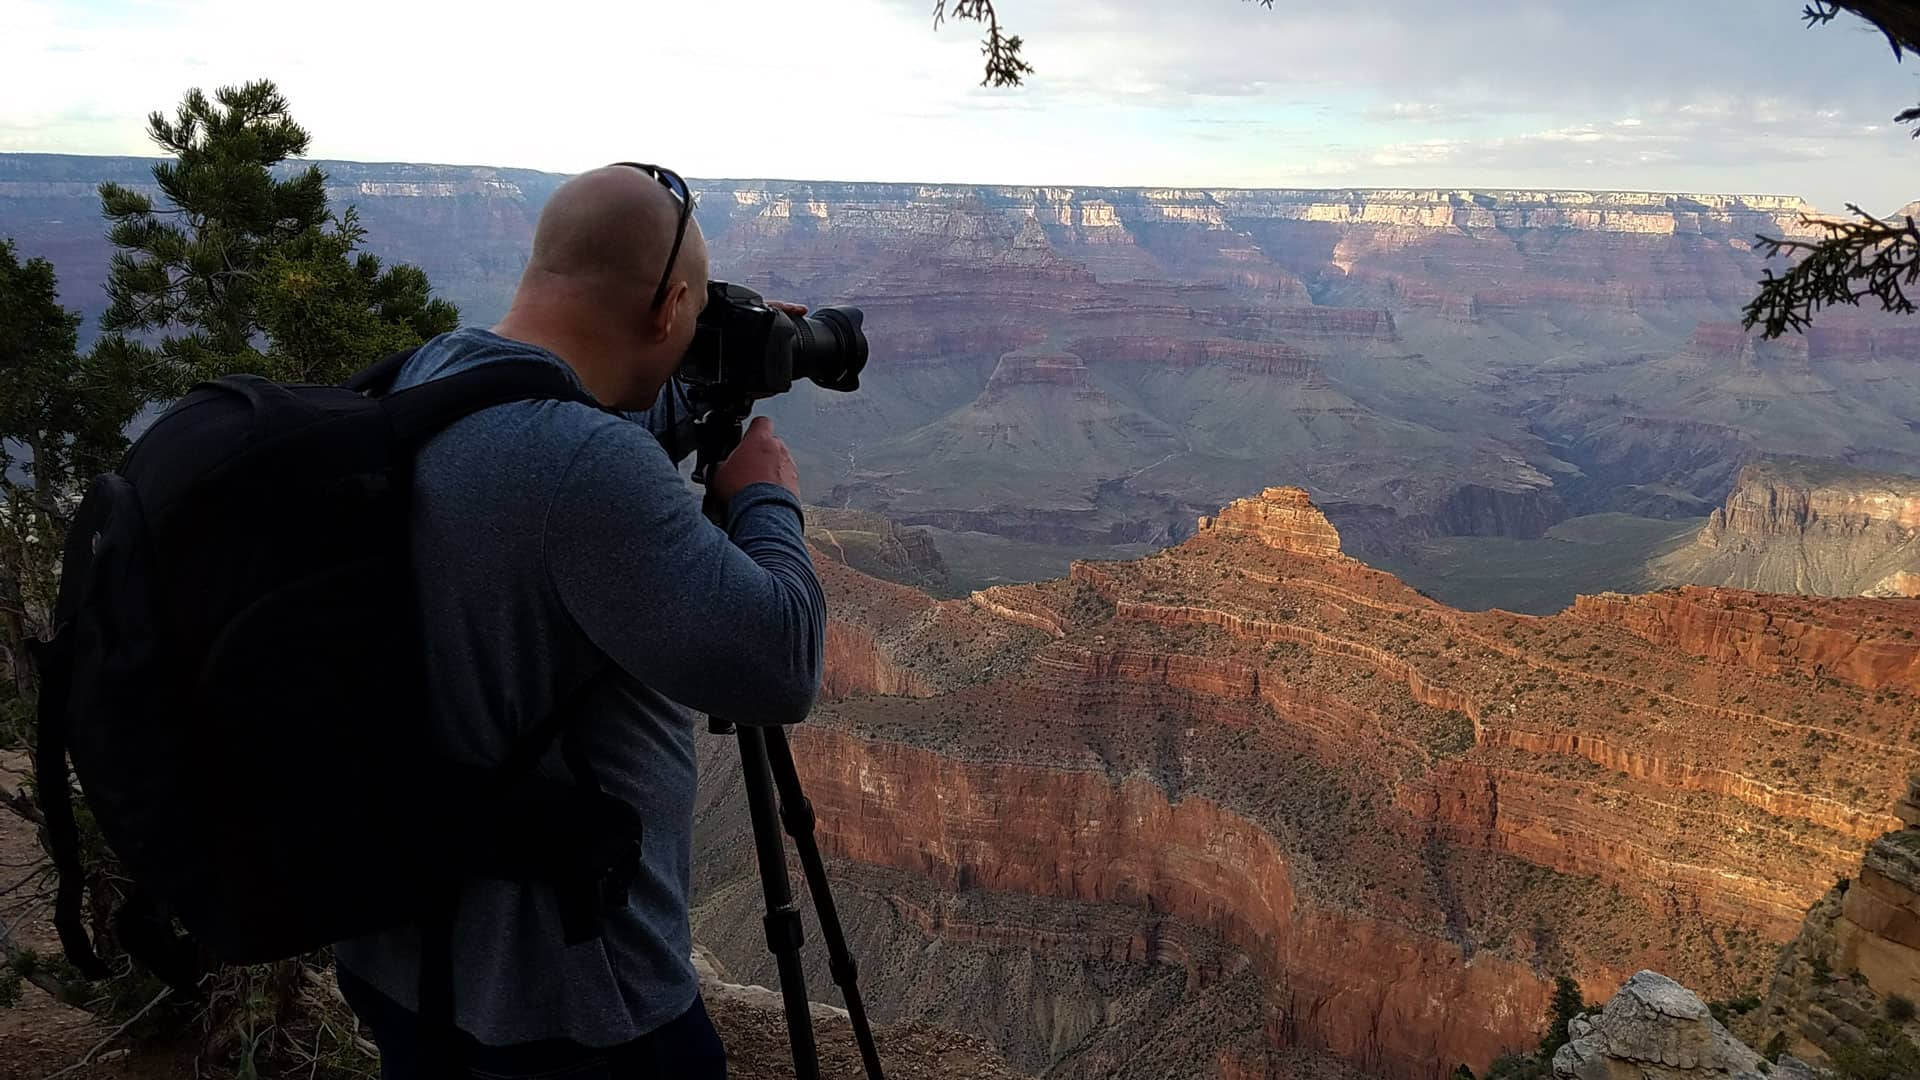 photographer with camera, tripod and backpack taking a picture of the Grand Canyon